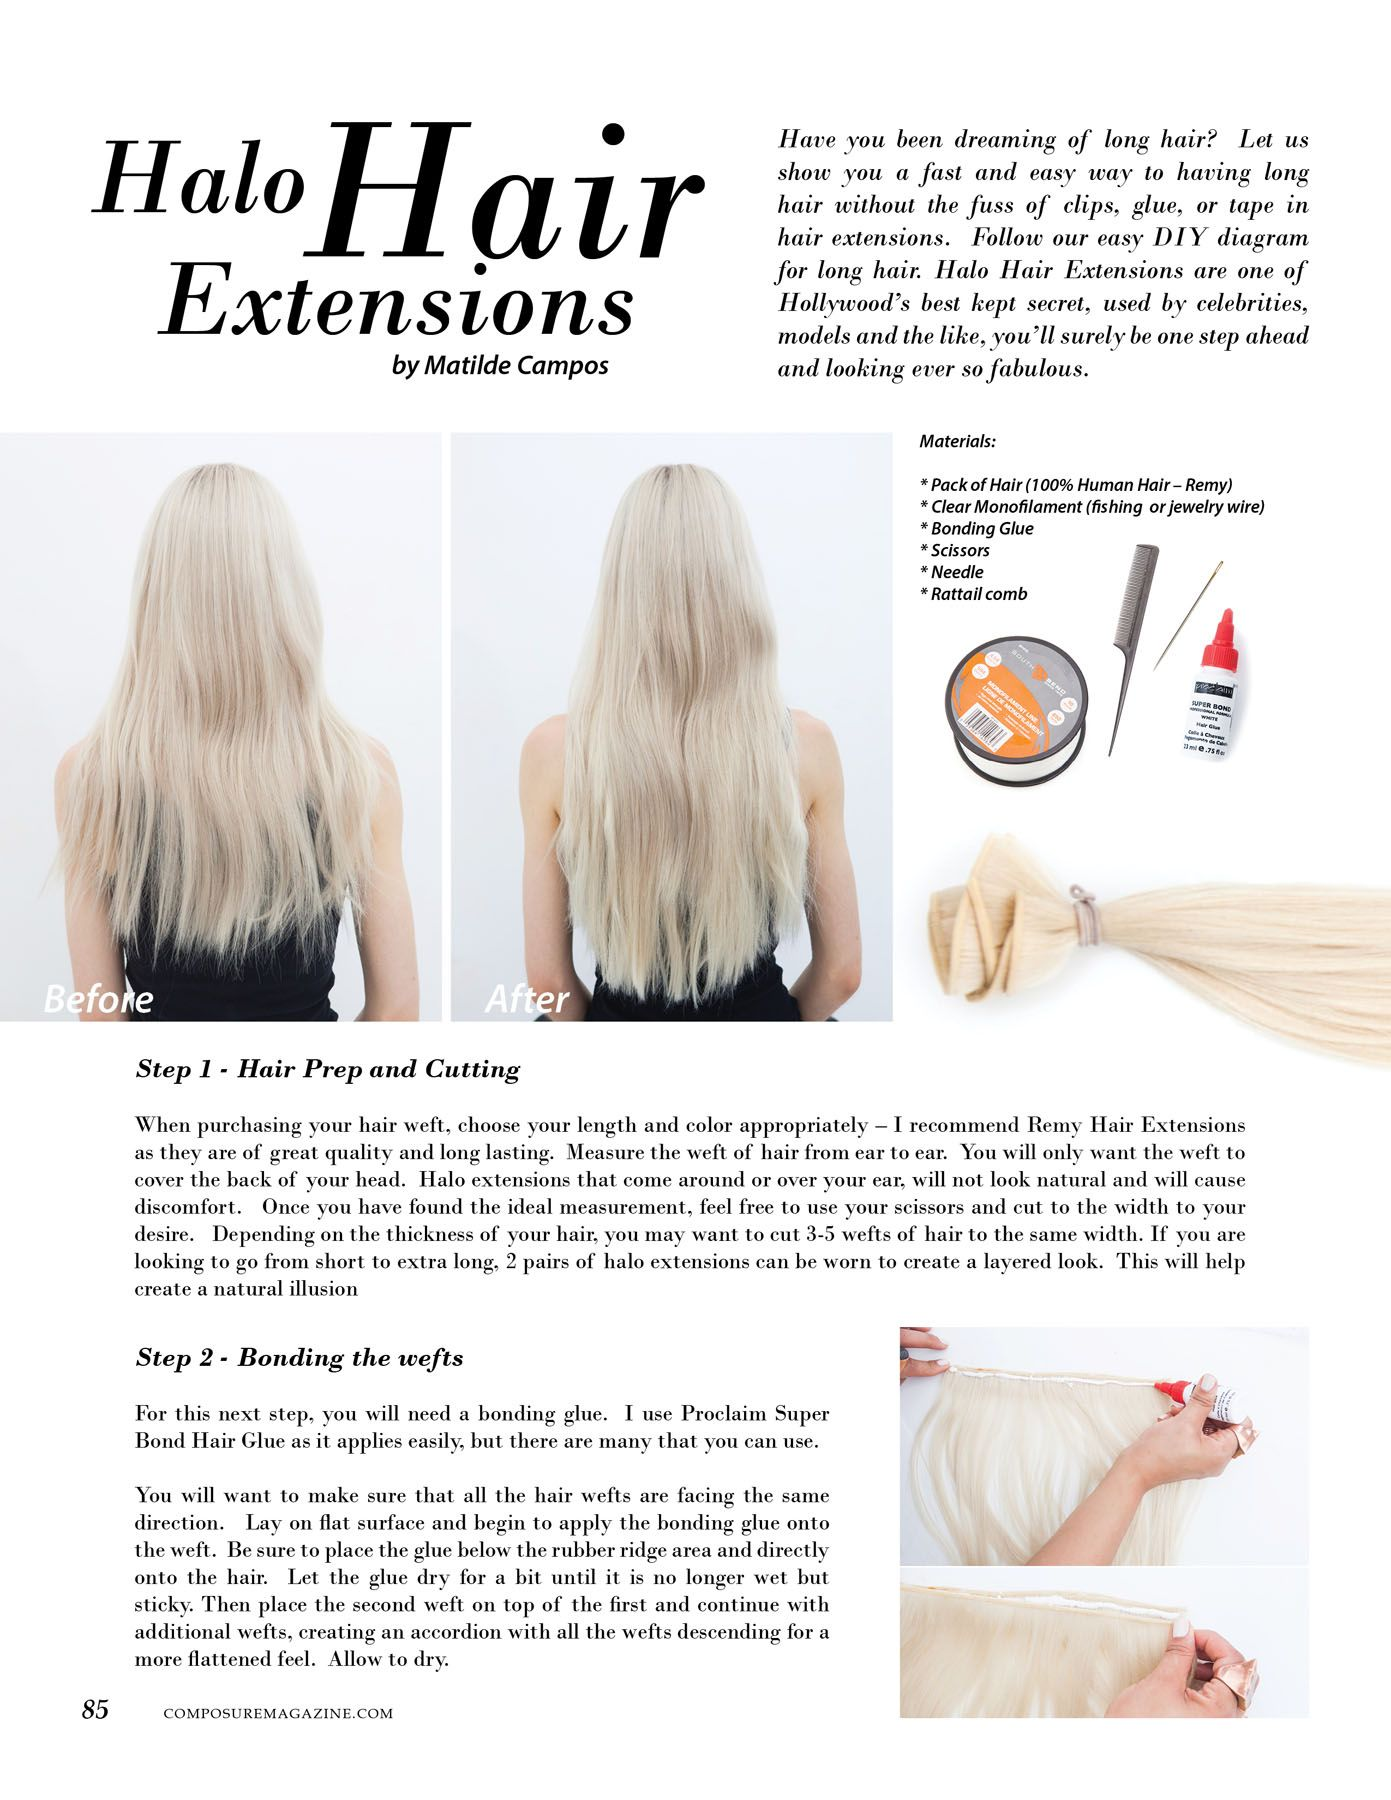 How to guide for halo hair extensions advertorials pinterest how to guide for halo hair extensions pmusecretfo Image collections